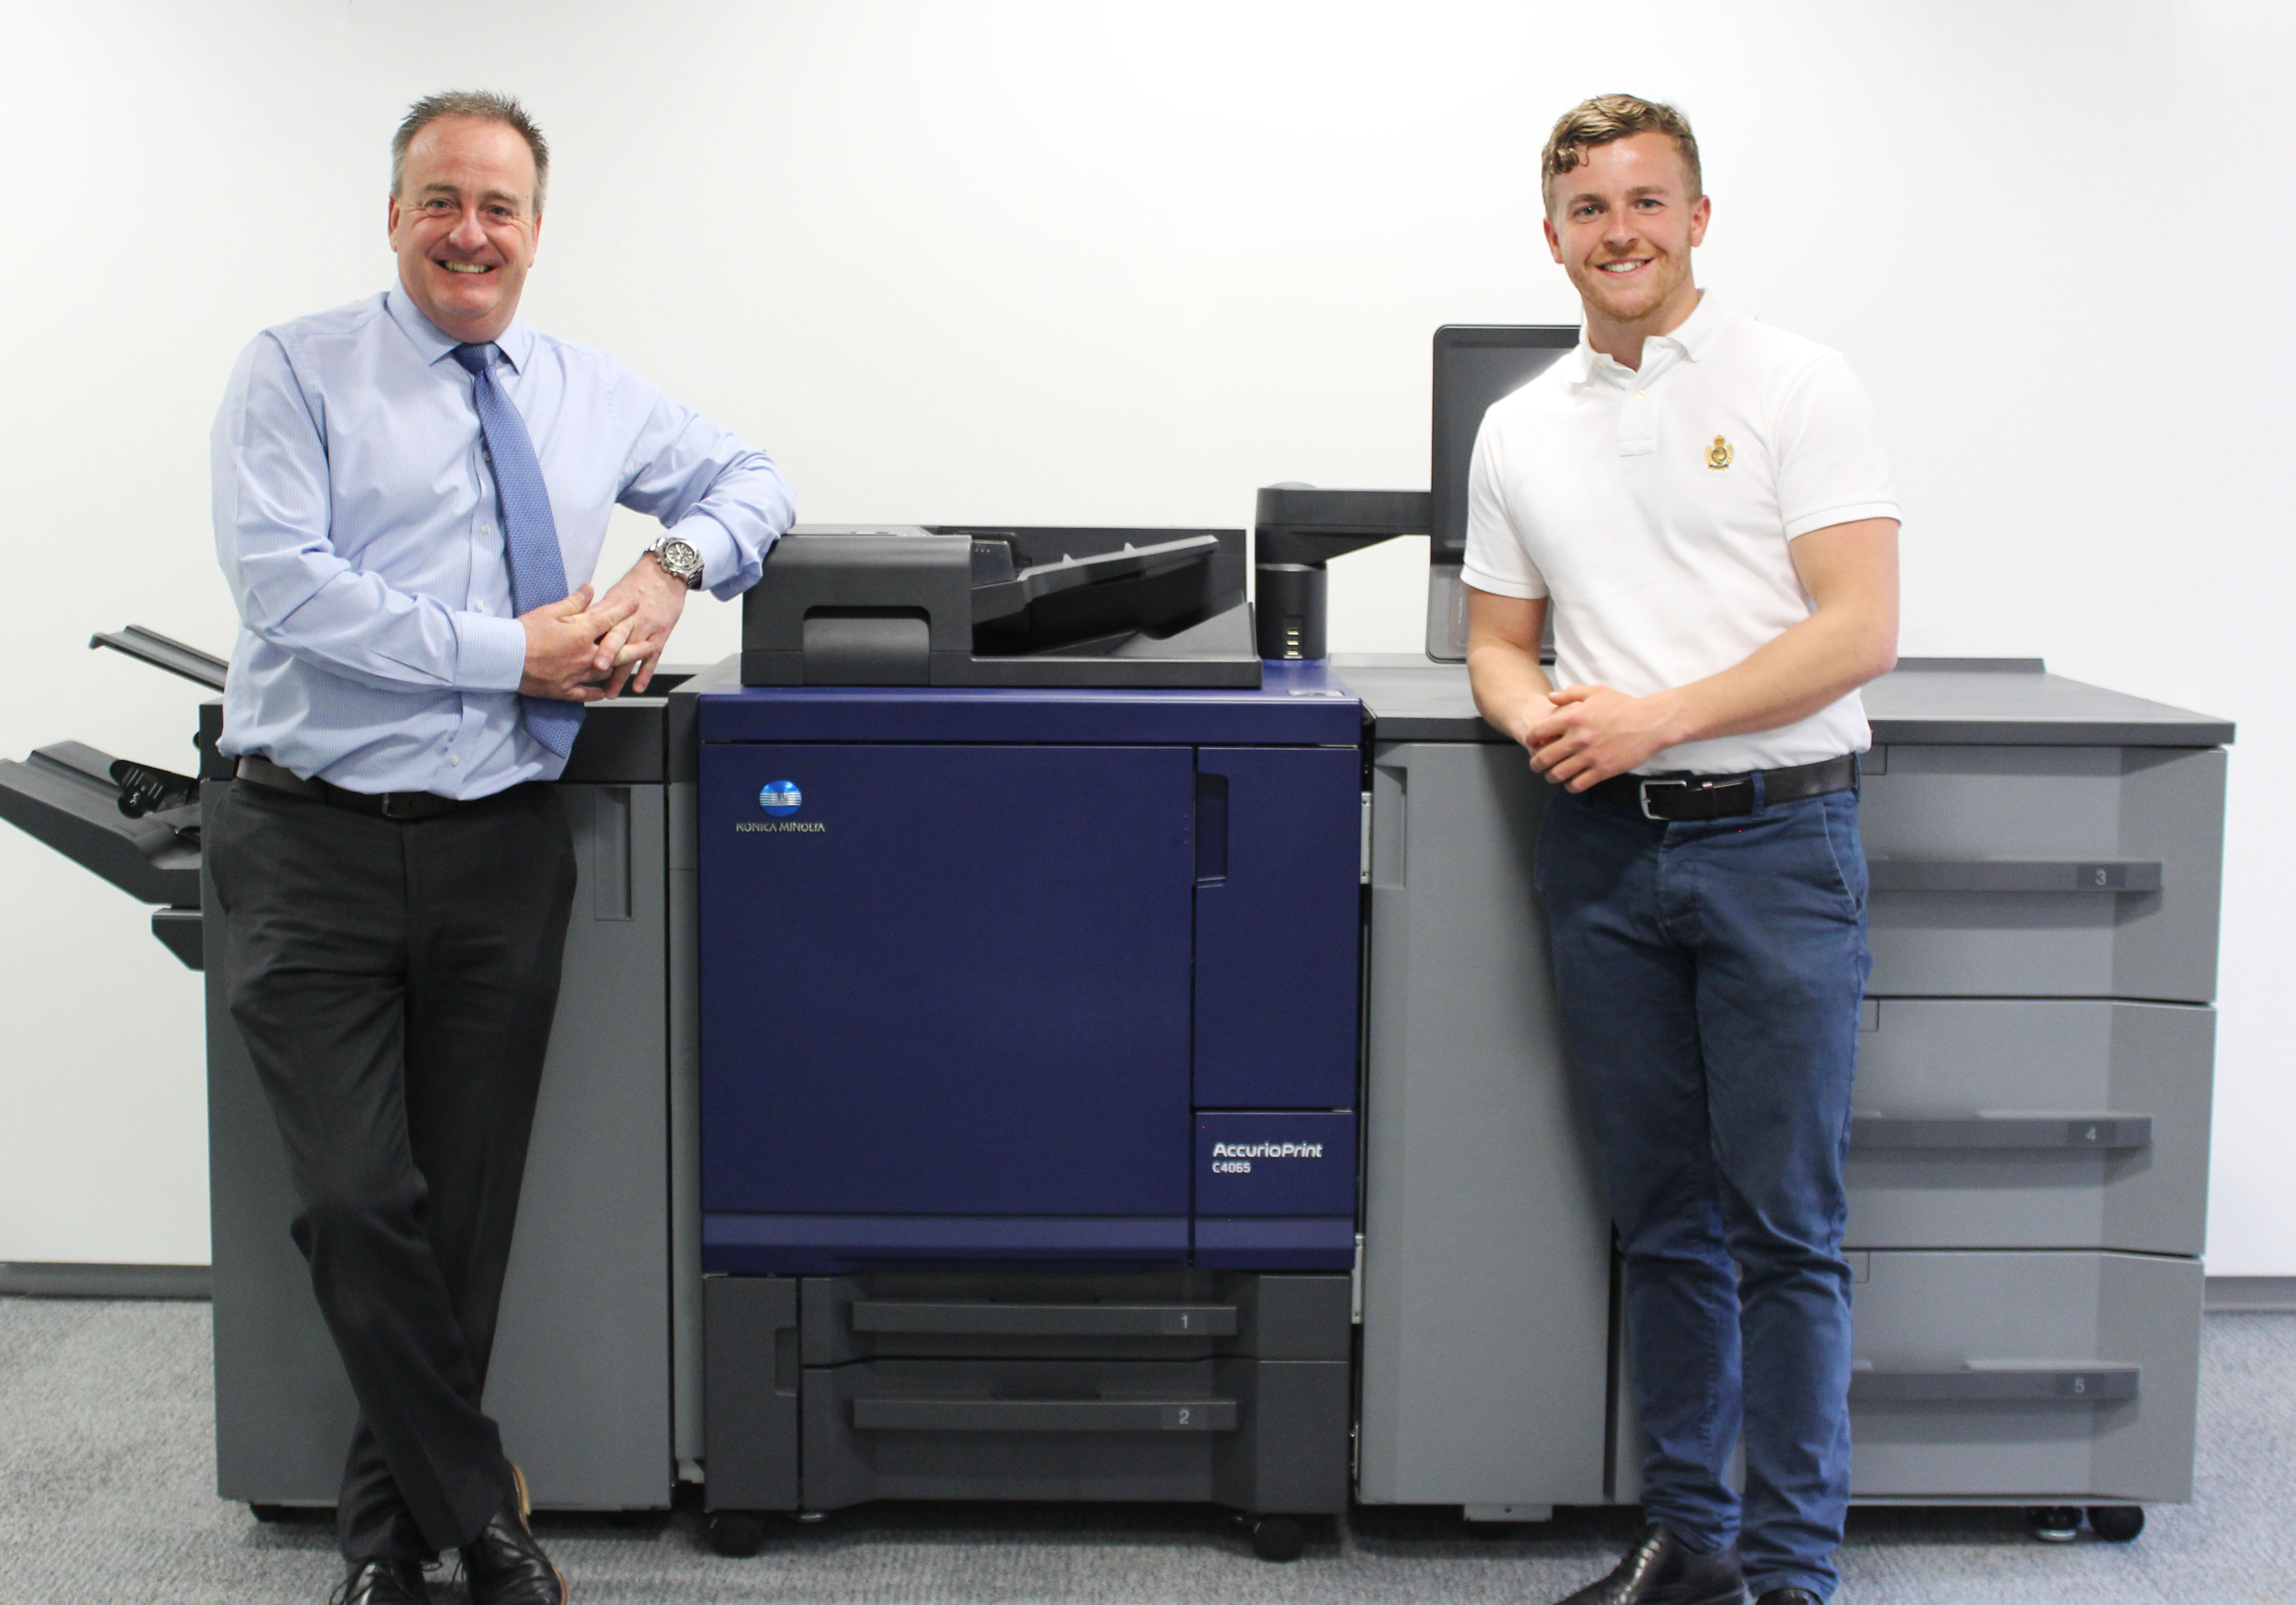 Konica Minolta partners with Digital Office Services to deliver enhanced print and digital solutions